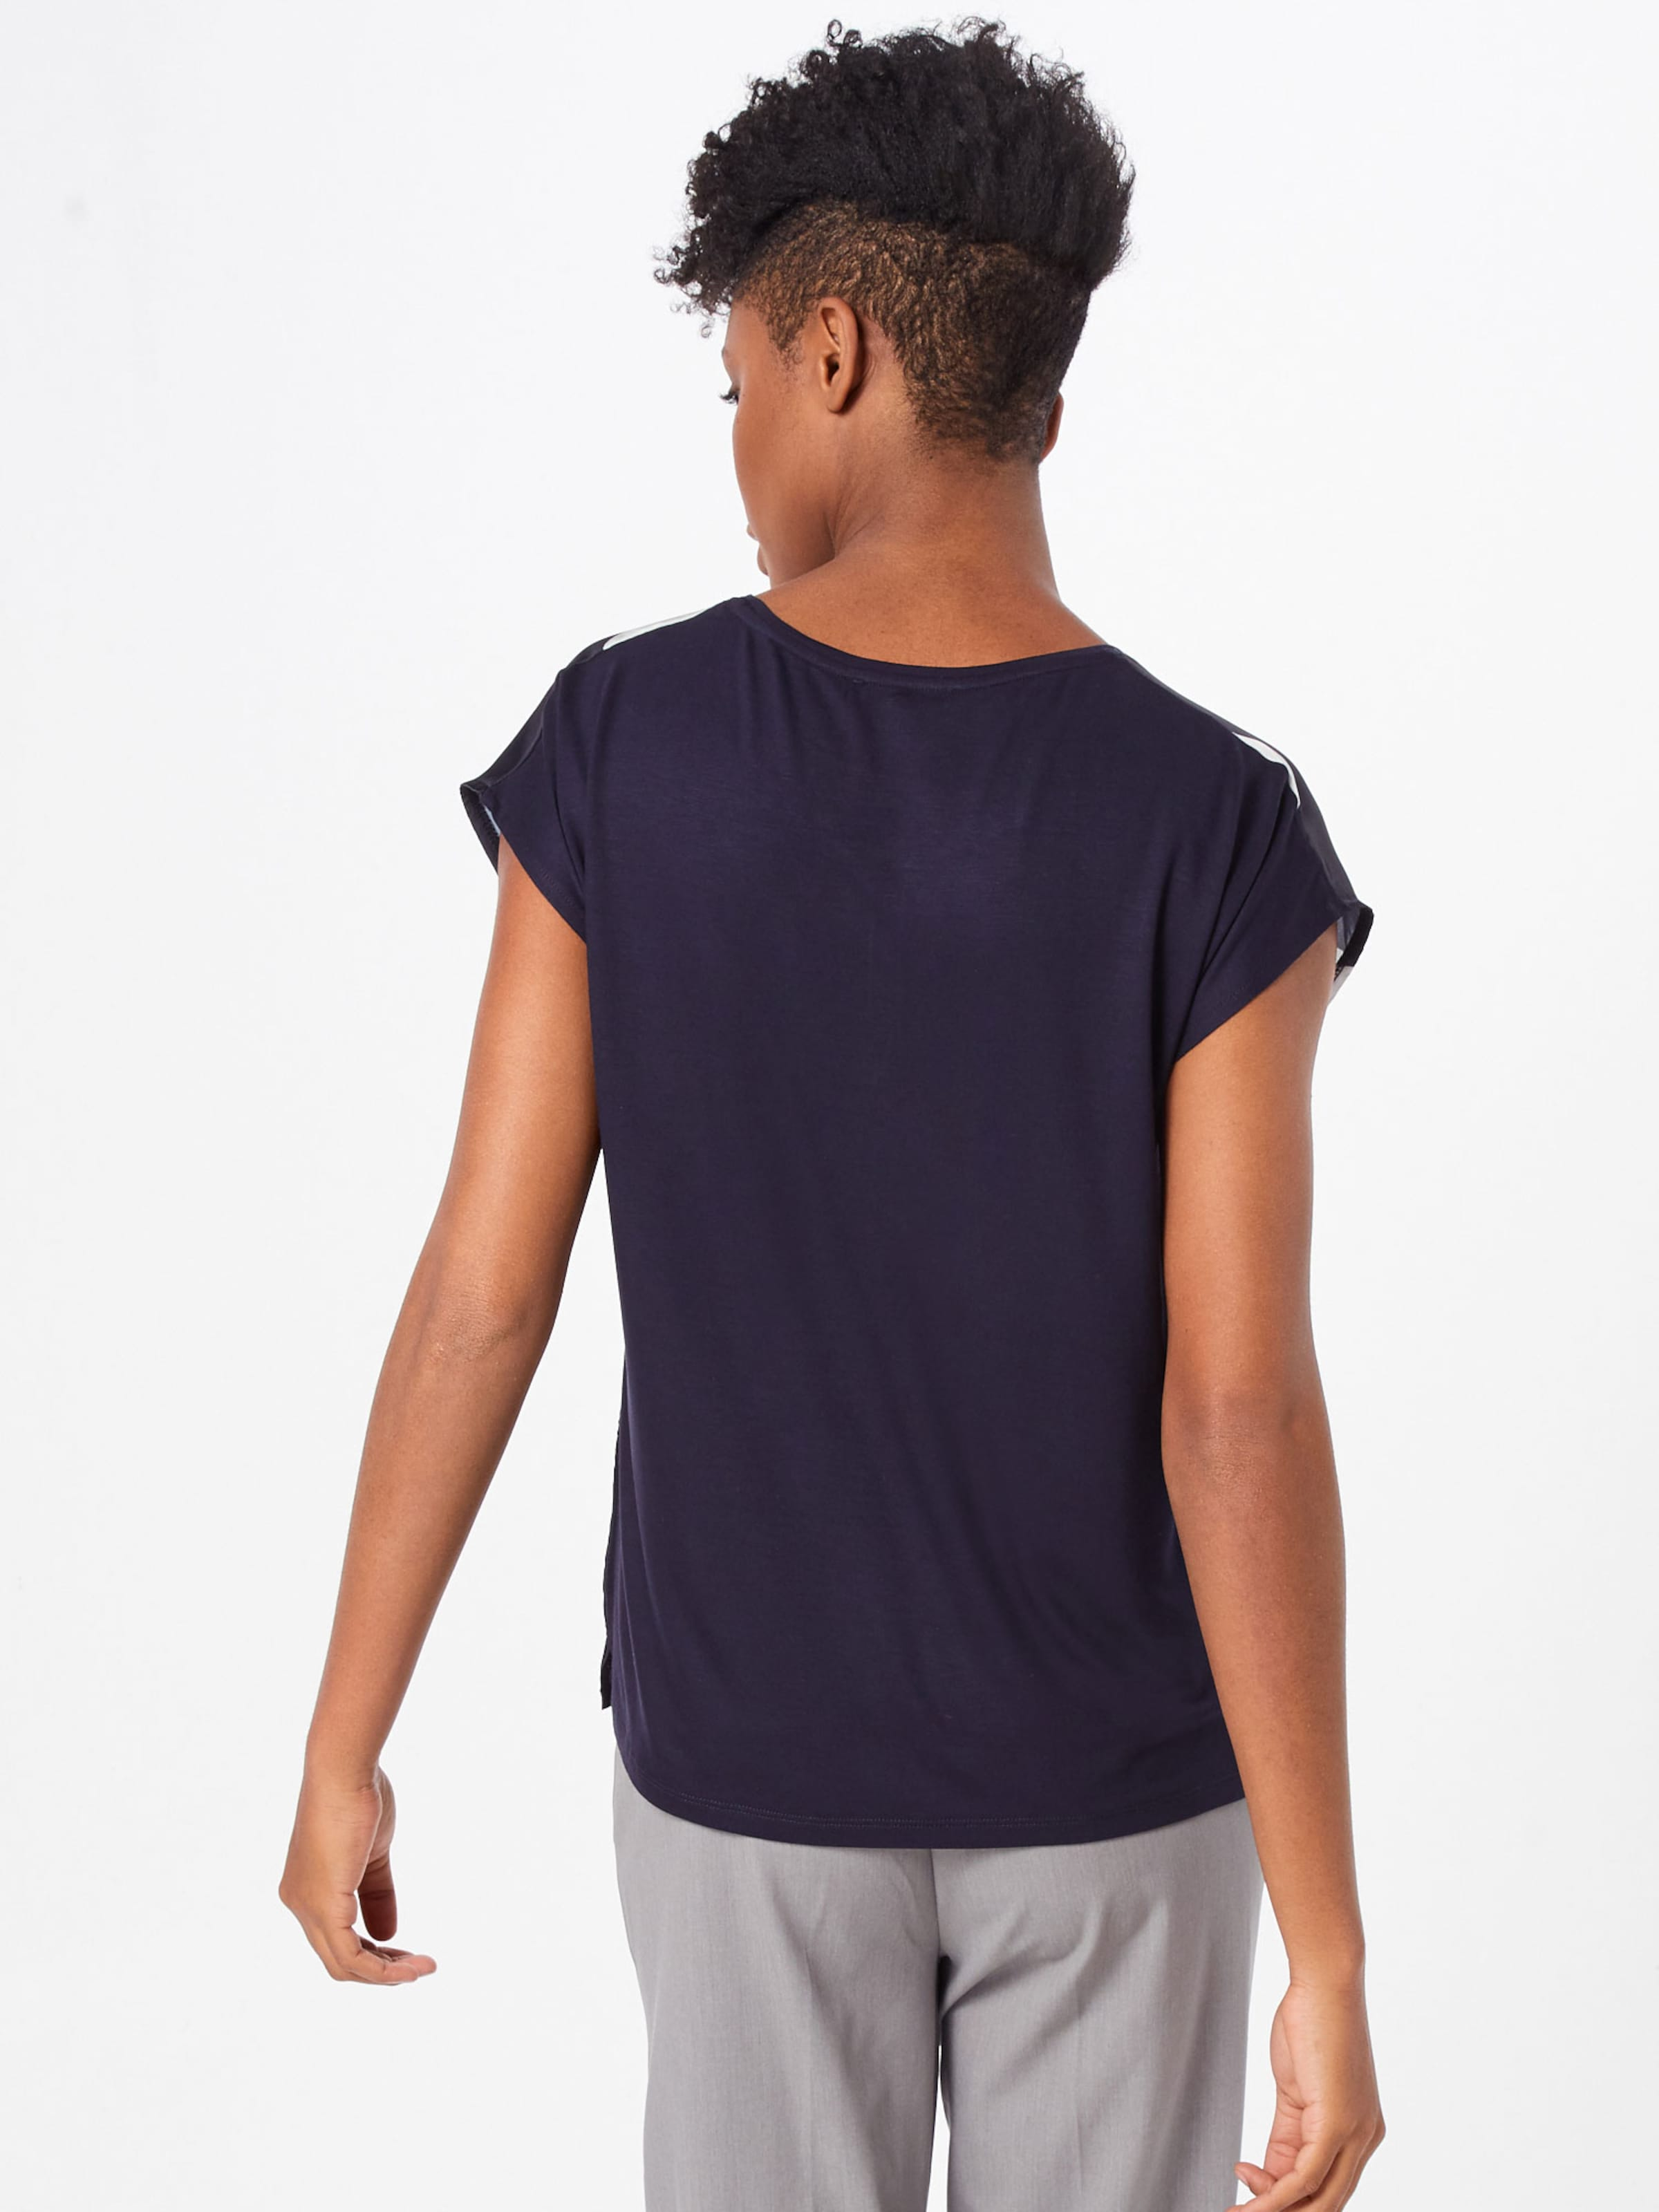 In In In Shirt Shirt MarineWeiß Moreamp; Moreamp; Moreamp; MarineWeiß Shirt wXNOPn08k